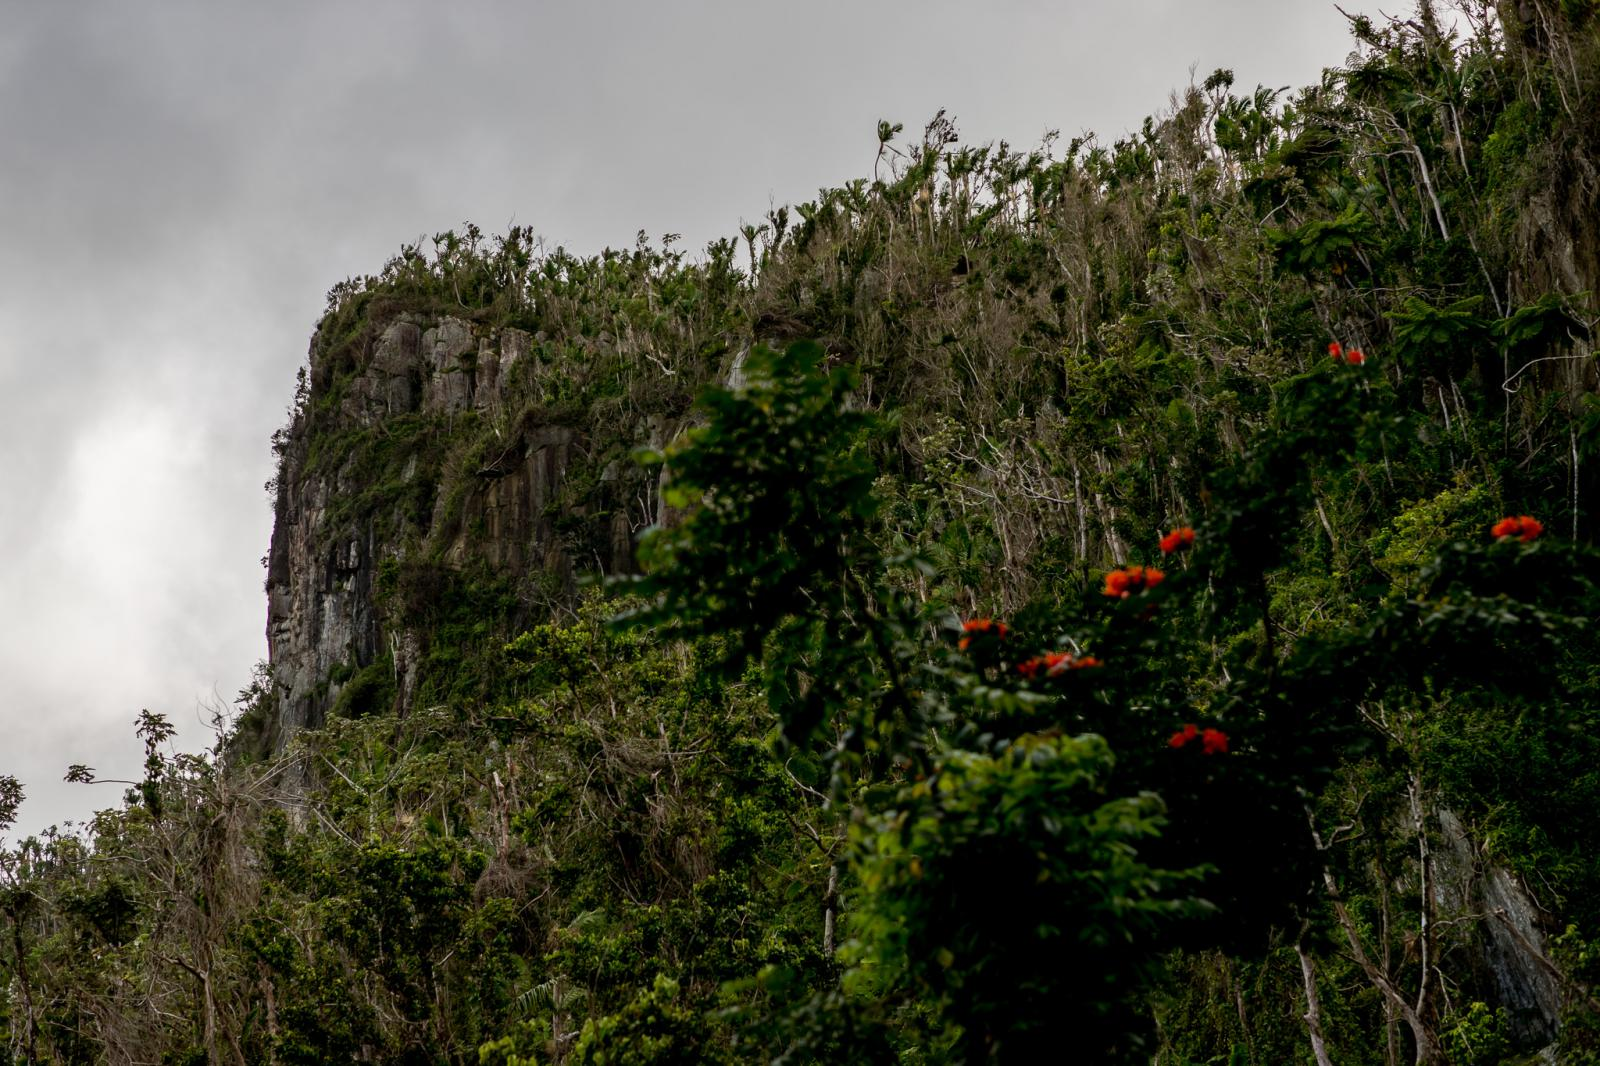 Loveshoot Regenwoud El Yunque